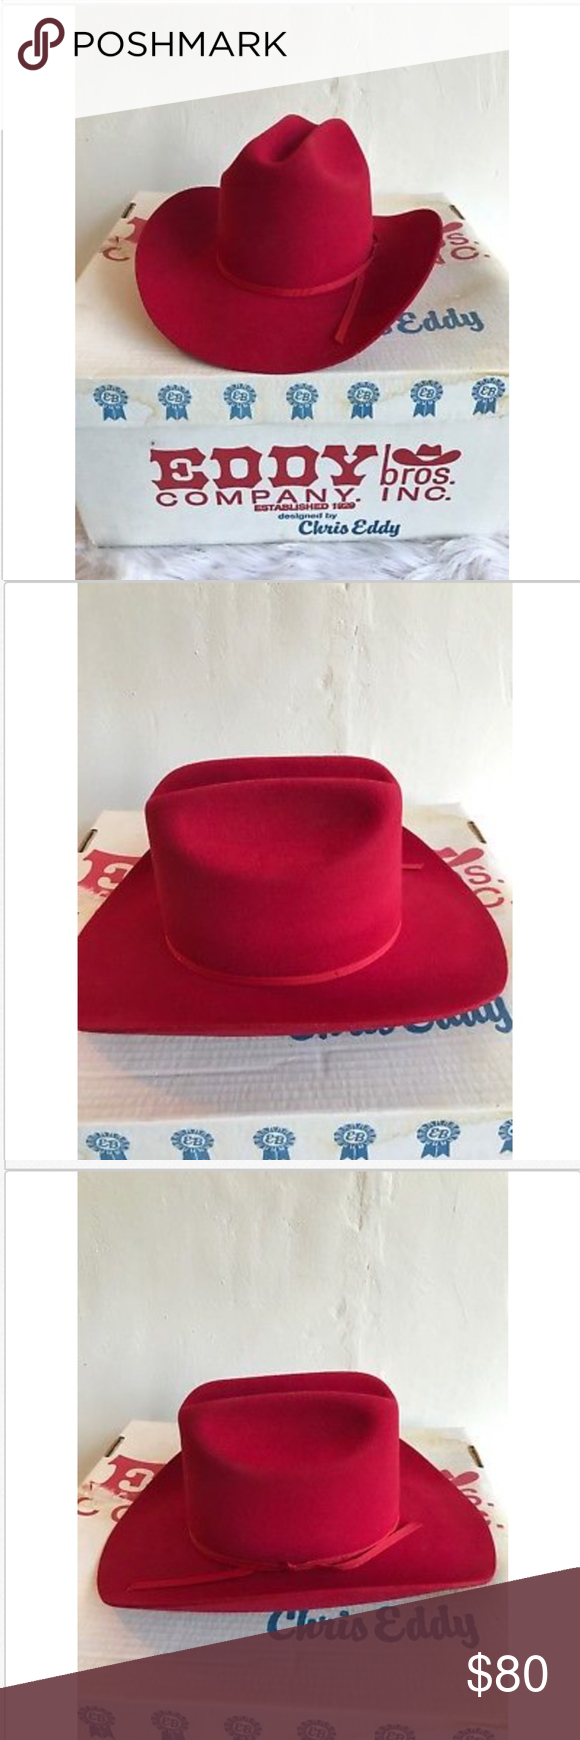 1e7ed9a8da5 Eddy Bros Women s Cowboy Hat XX Fur Blend Wool Eddy Bros Women s Cowboy Hat  XX Fur